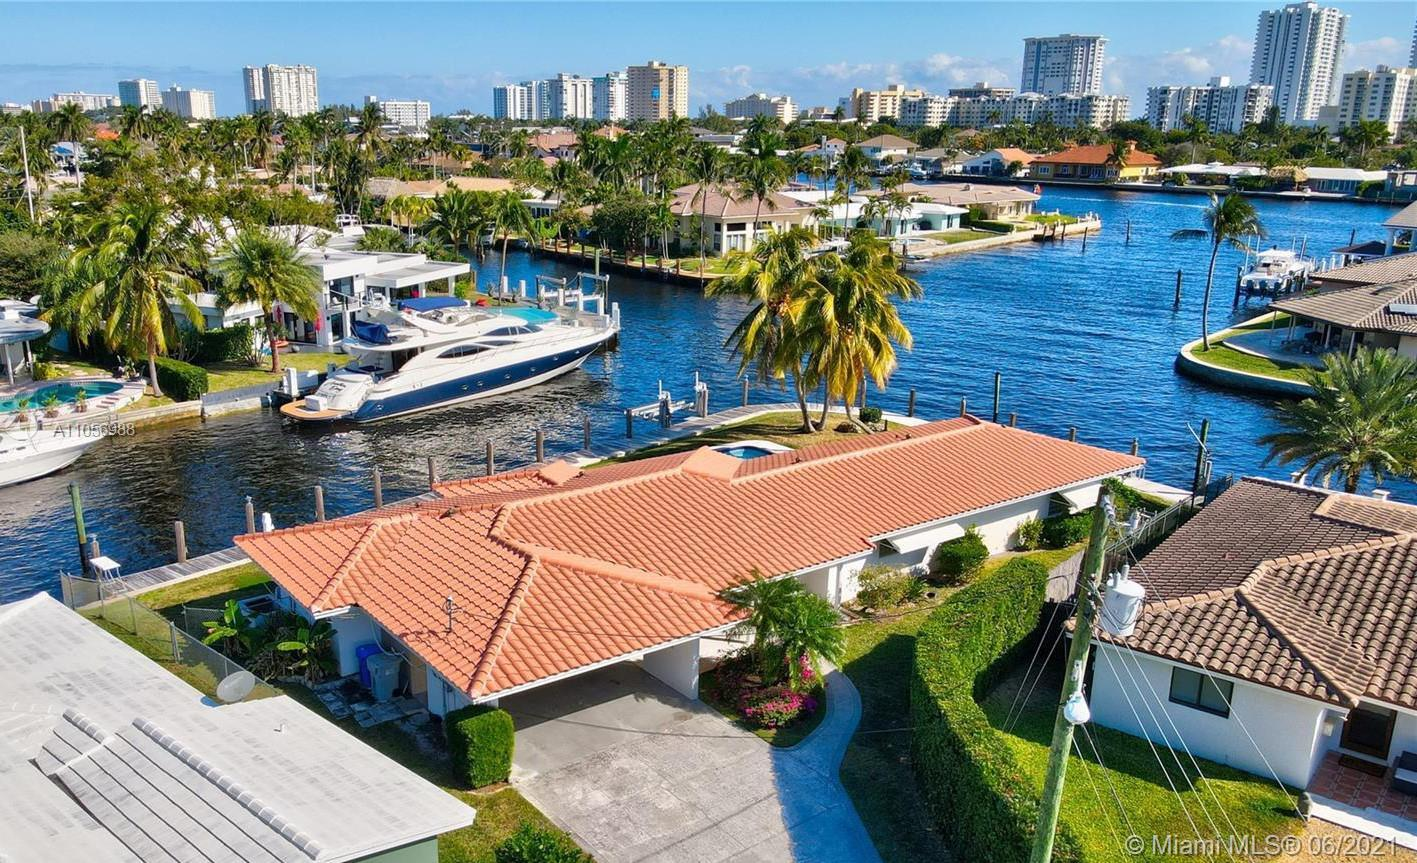 A rare opportunity to own a private point lot in Pompano Beach with over 200 feet on the water and w